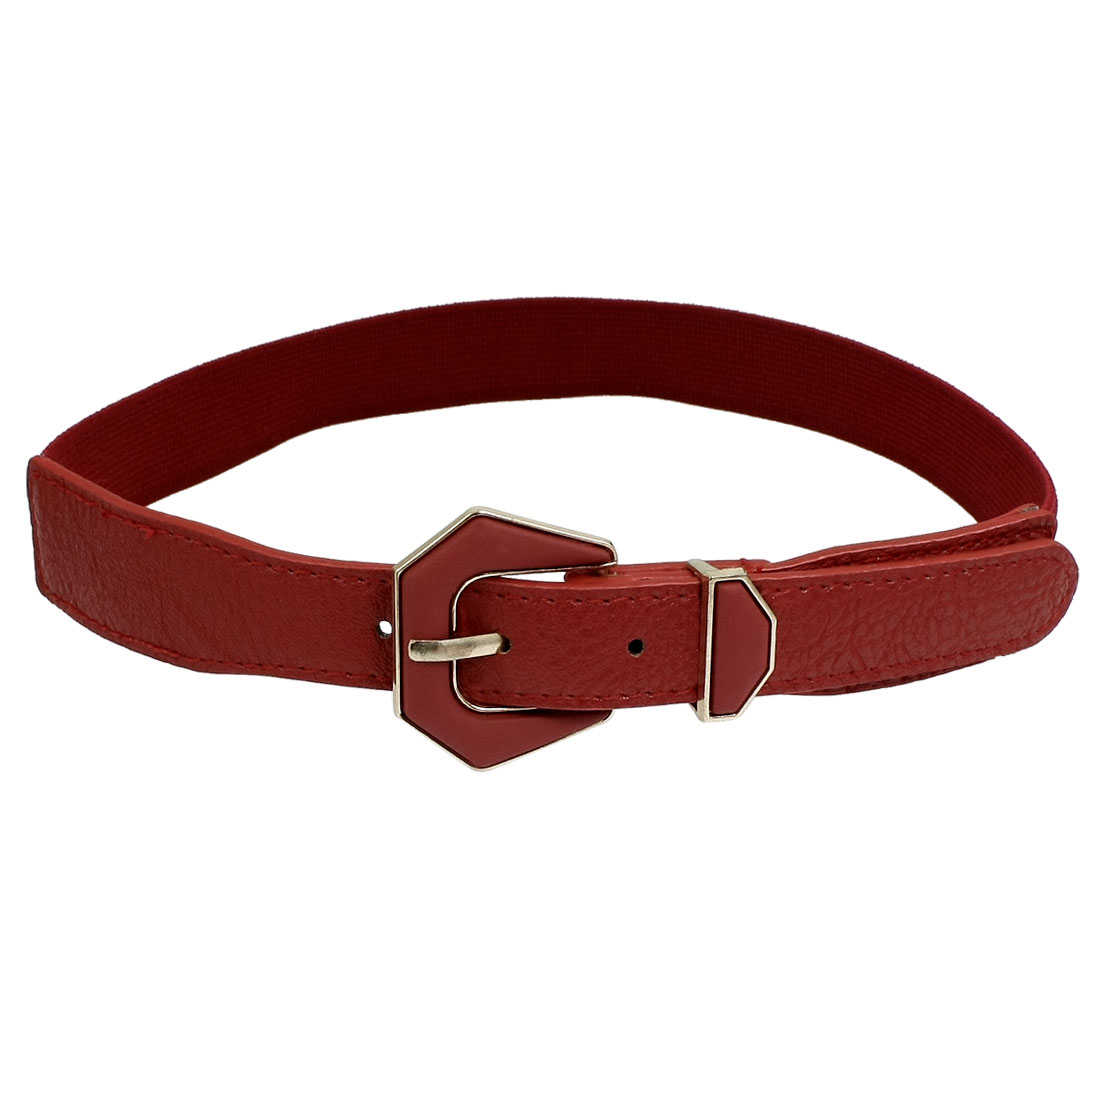 Single Prong Buckle Red Faux Leather Elastic Waist Belt Waistband for Lady